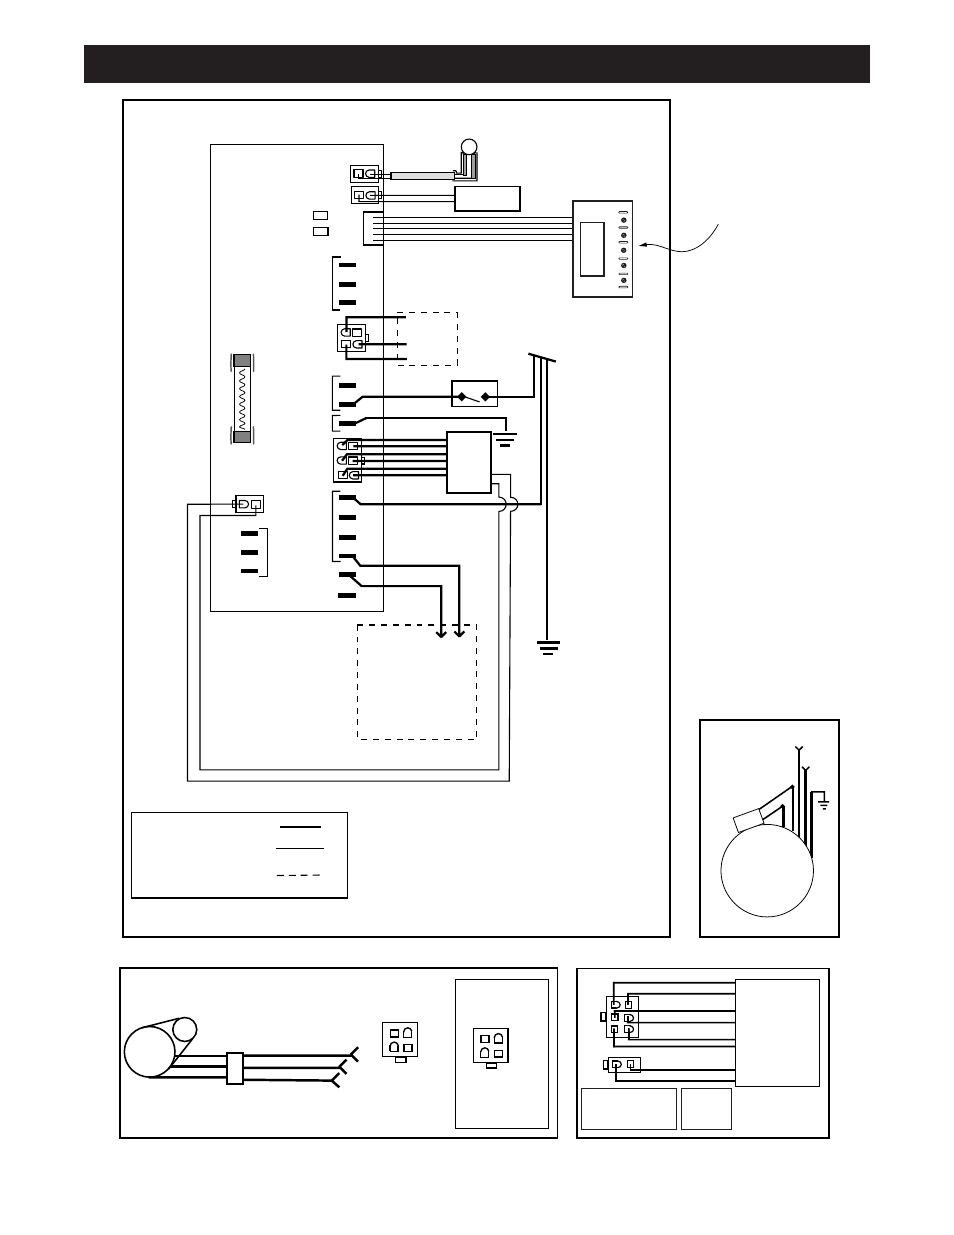 Auto Transformer Wiring Diagram Library For Low Voltage Motor Residential Fan Details Detail Defrost